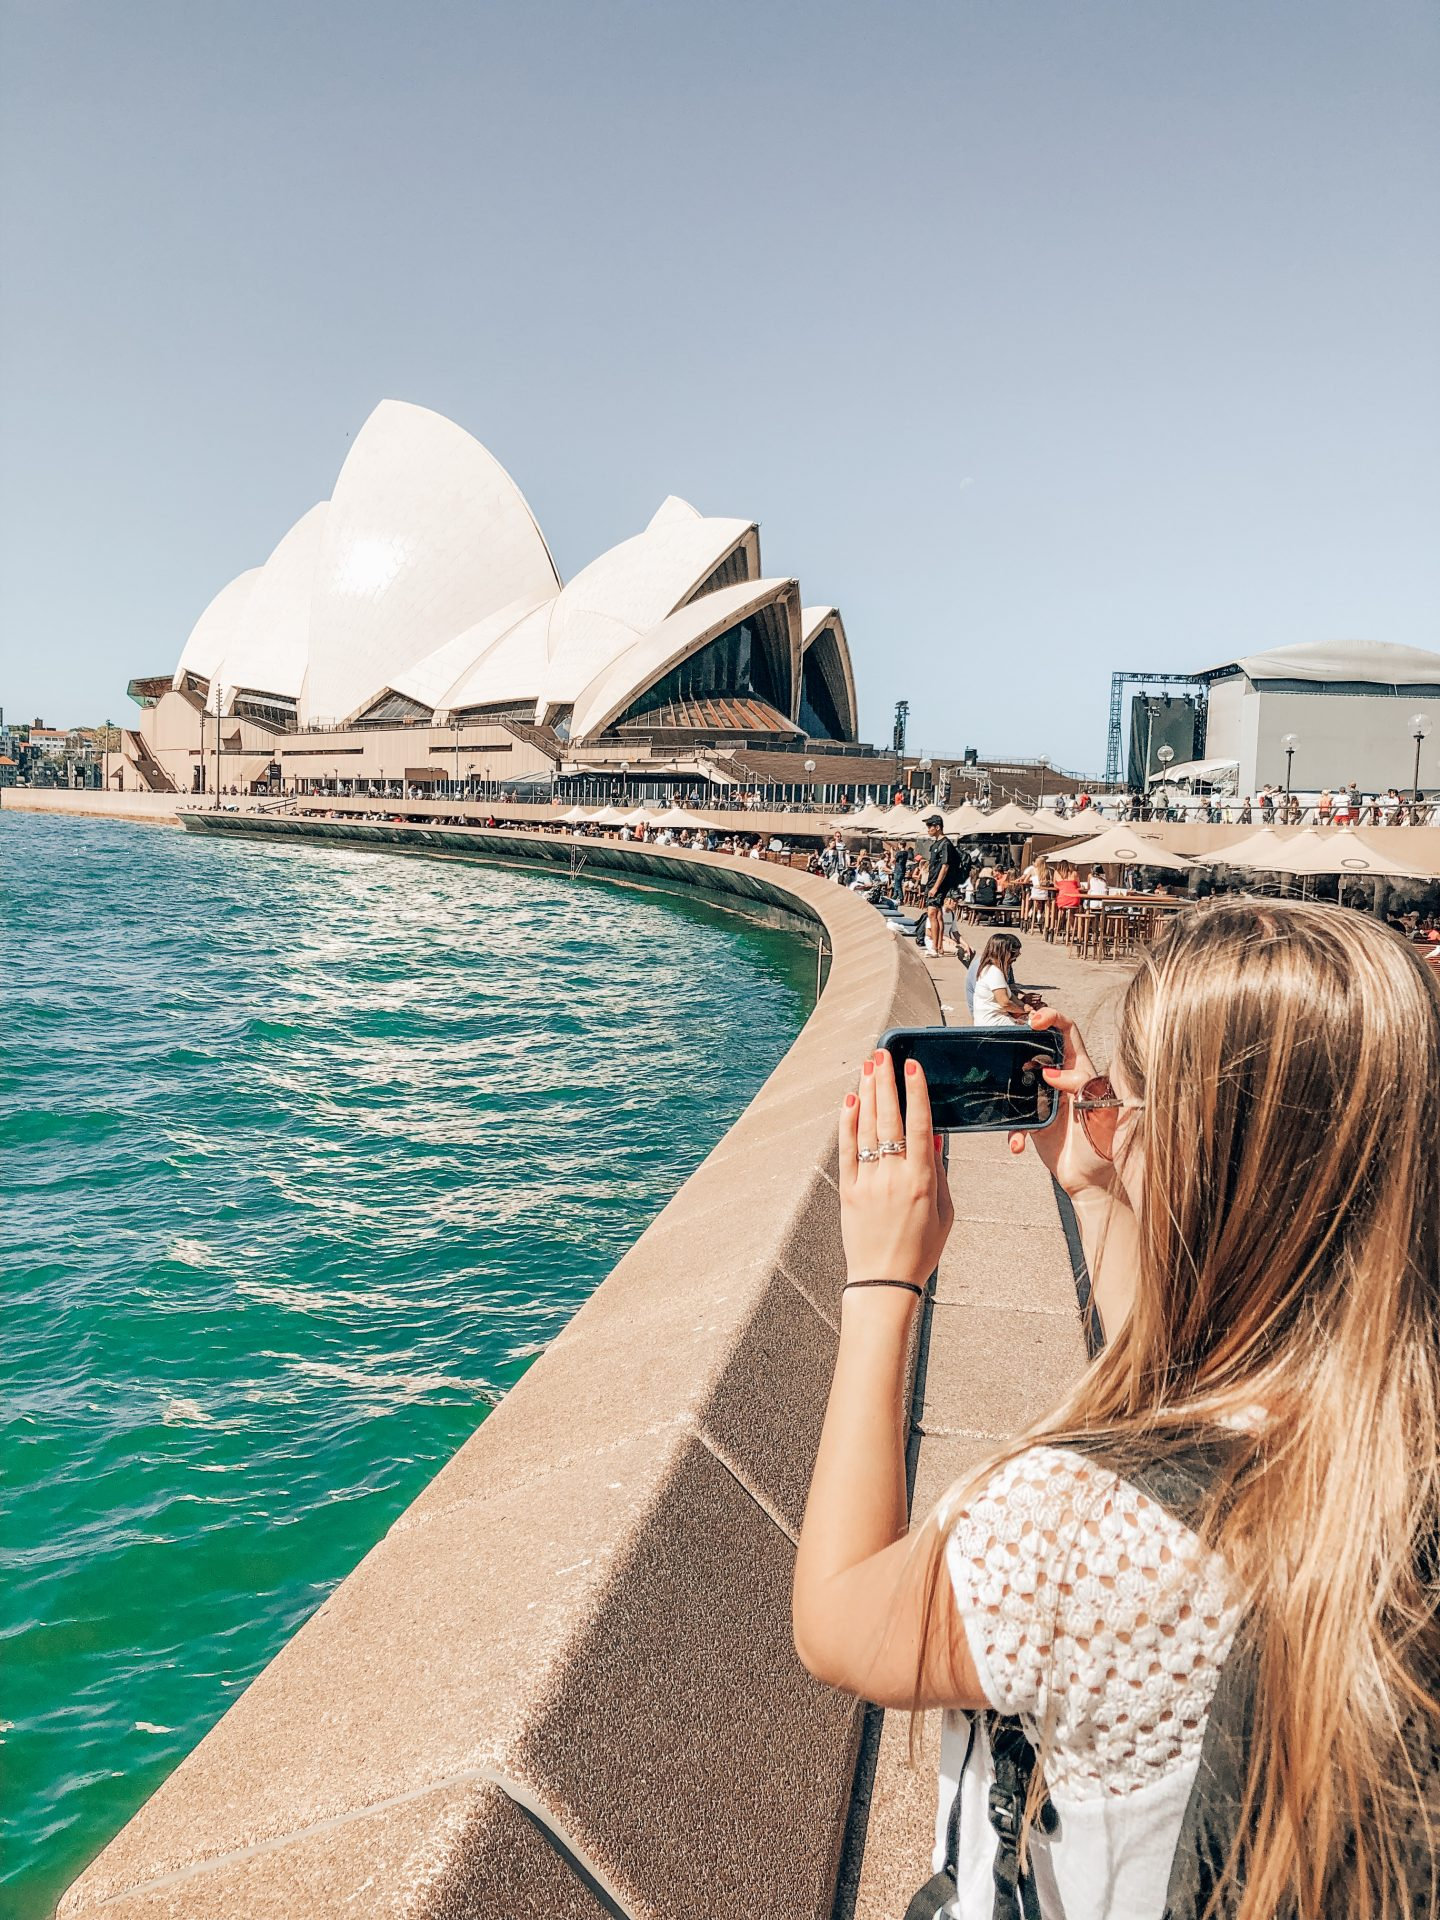 Taking a photo of the Sydney Opera House!